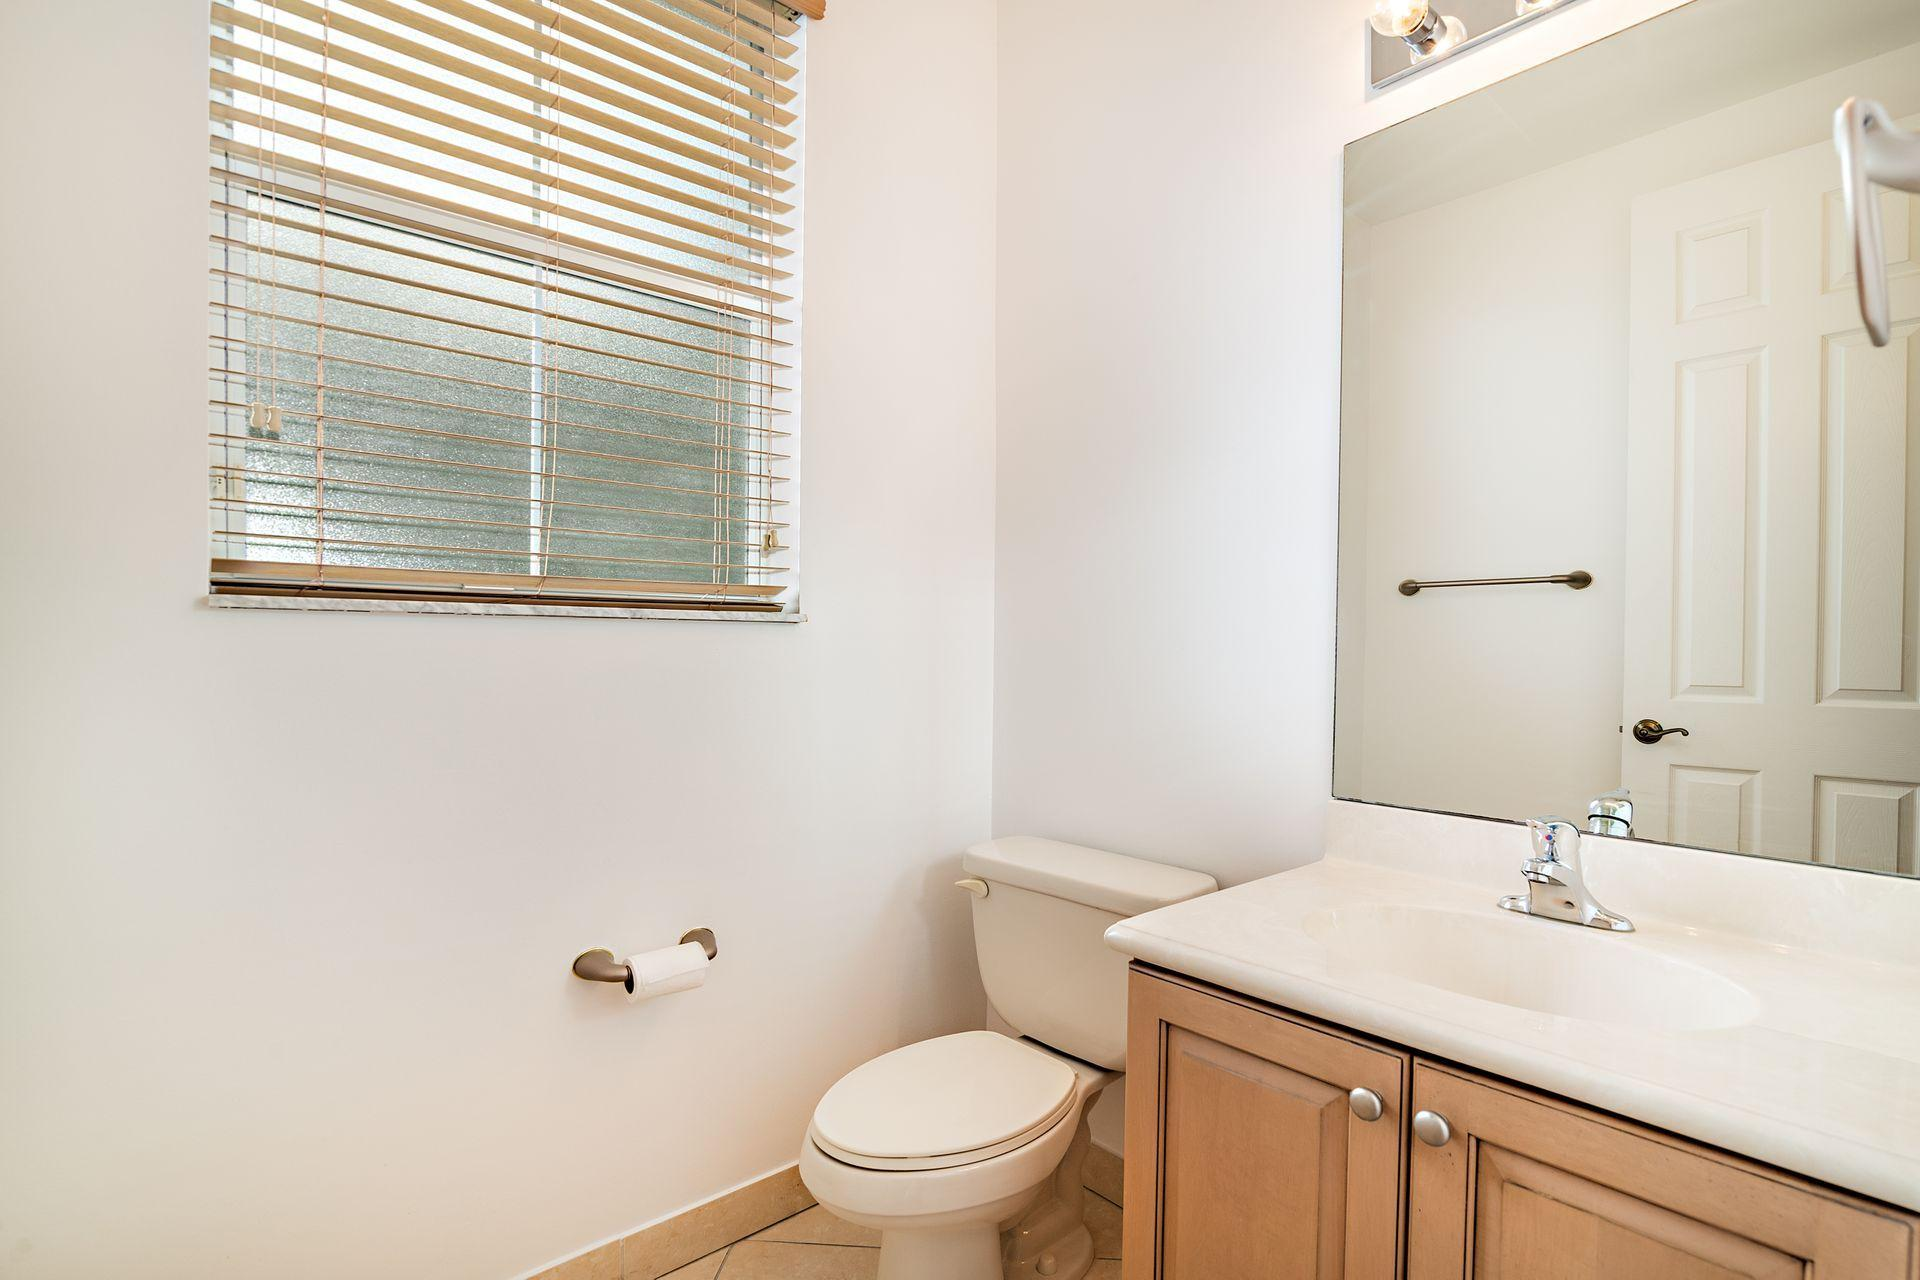 4122 Greenway Drive, Jupiter, Florida 33458, 3 Bedrooms Bedrooms, ,3.1 BathroomsBathrooms,A,Townhouse,Greenway,RX-10483596